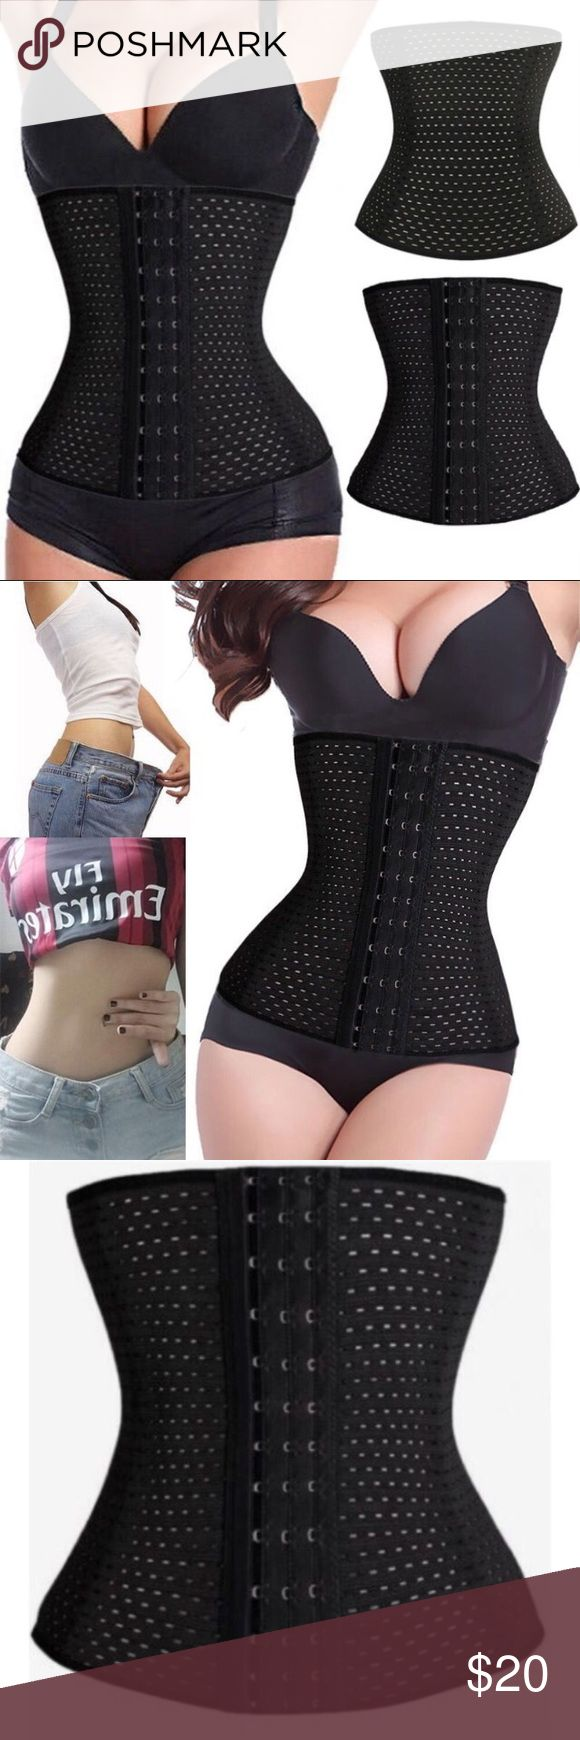 Waist Trainer 🎀 Brand New 🎀 Never Used Waist Trainer 🎀 Brand New 🎀 Never Used • Makes Stomach flat                                                                 • Help Lose inches  • Help Lose Weight • Suppresses Hunger • Improves Posture • Drastically Reduces Back Pain • Wear under your clothes for a instant weight loss look  • You will look slimmer once you put it on • Super comfortable lululemon athletica Intimates & Sleepwear Shapewear